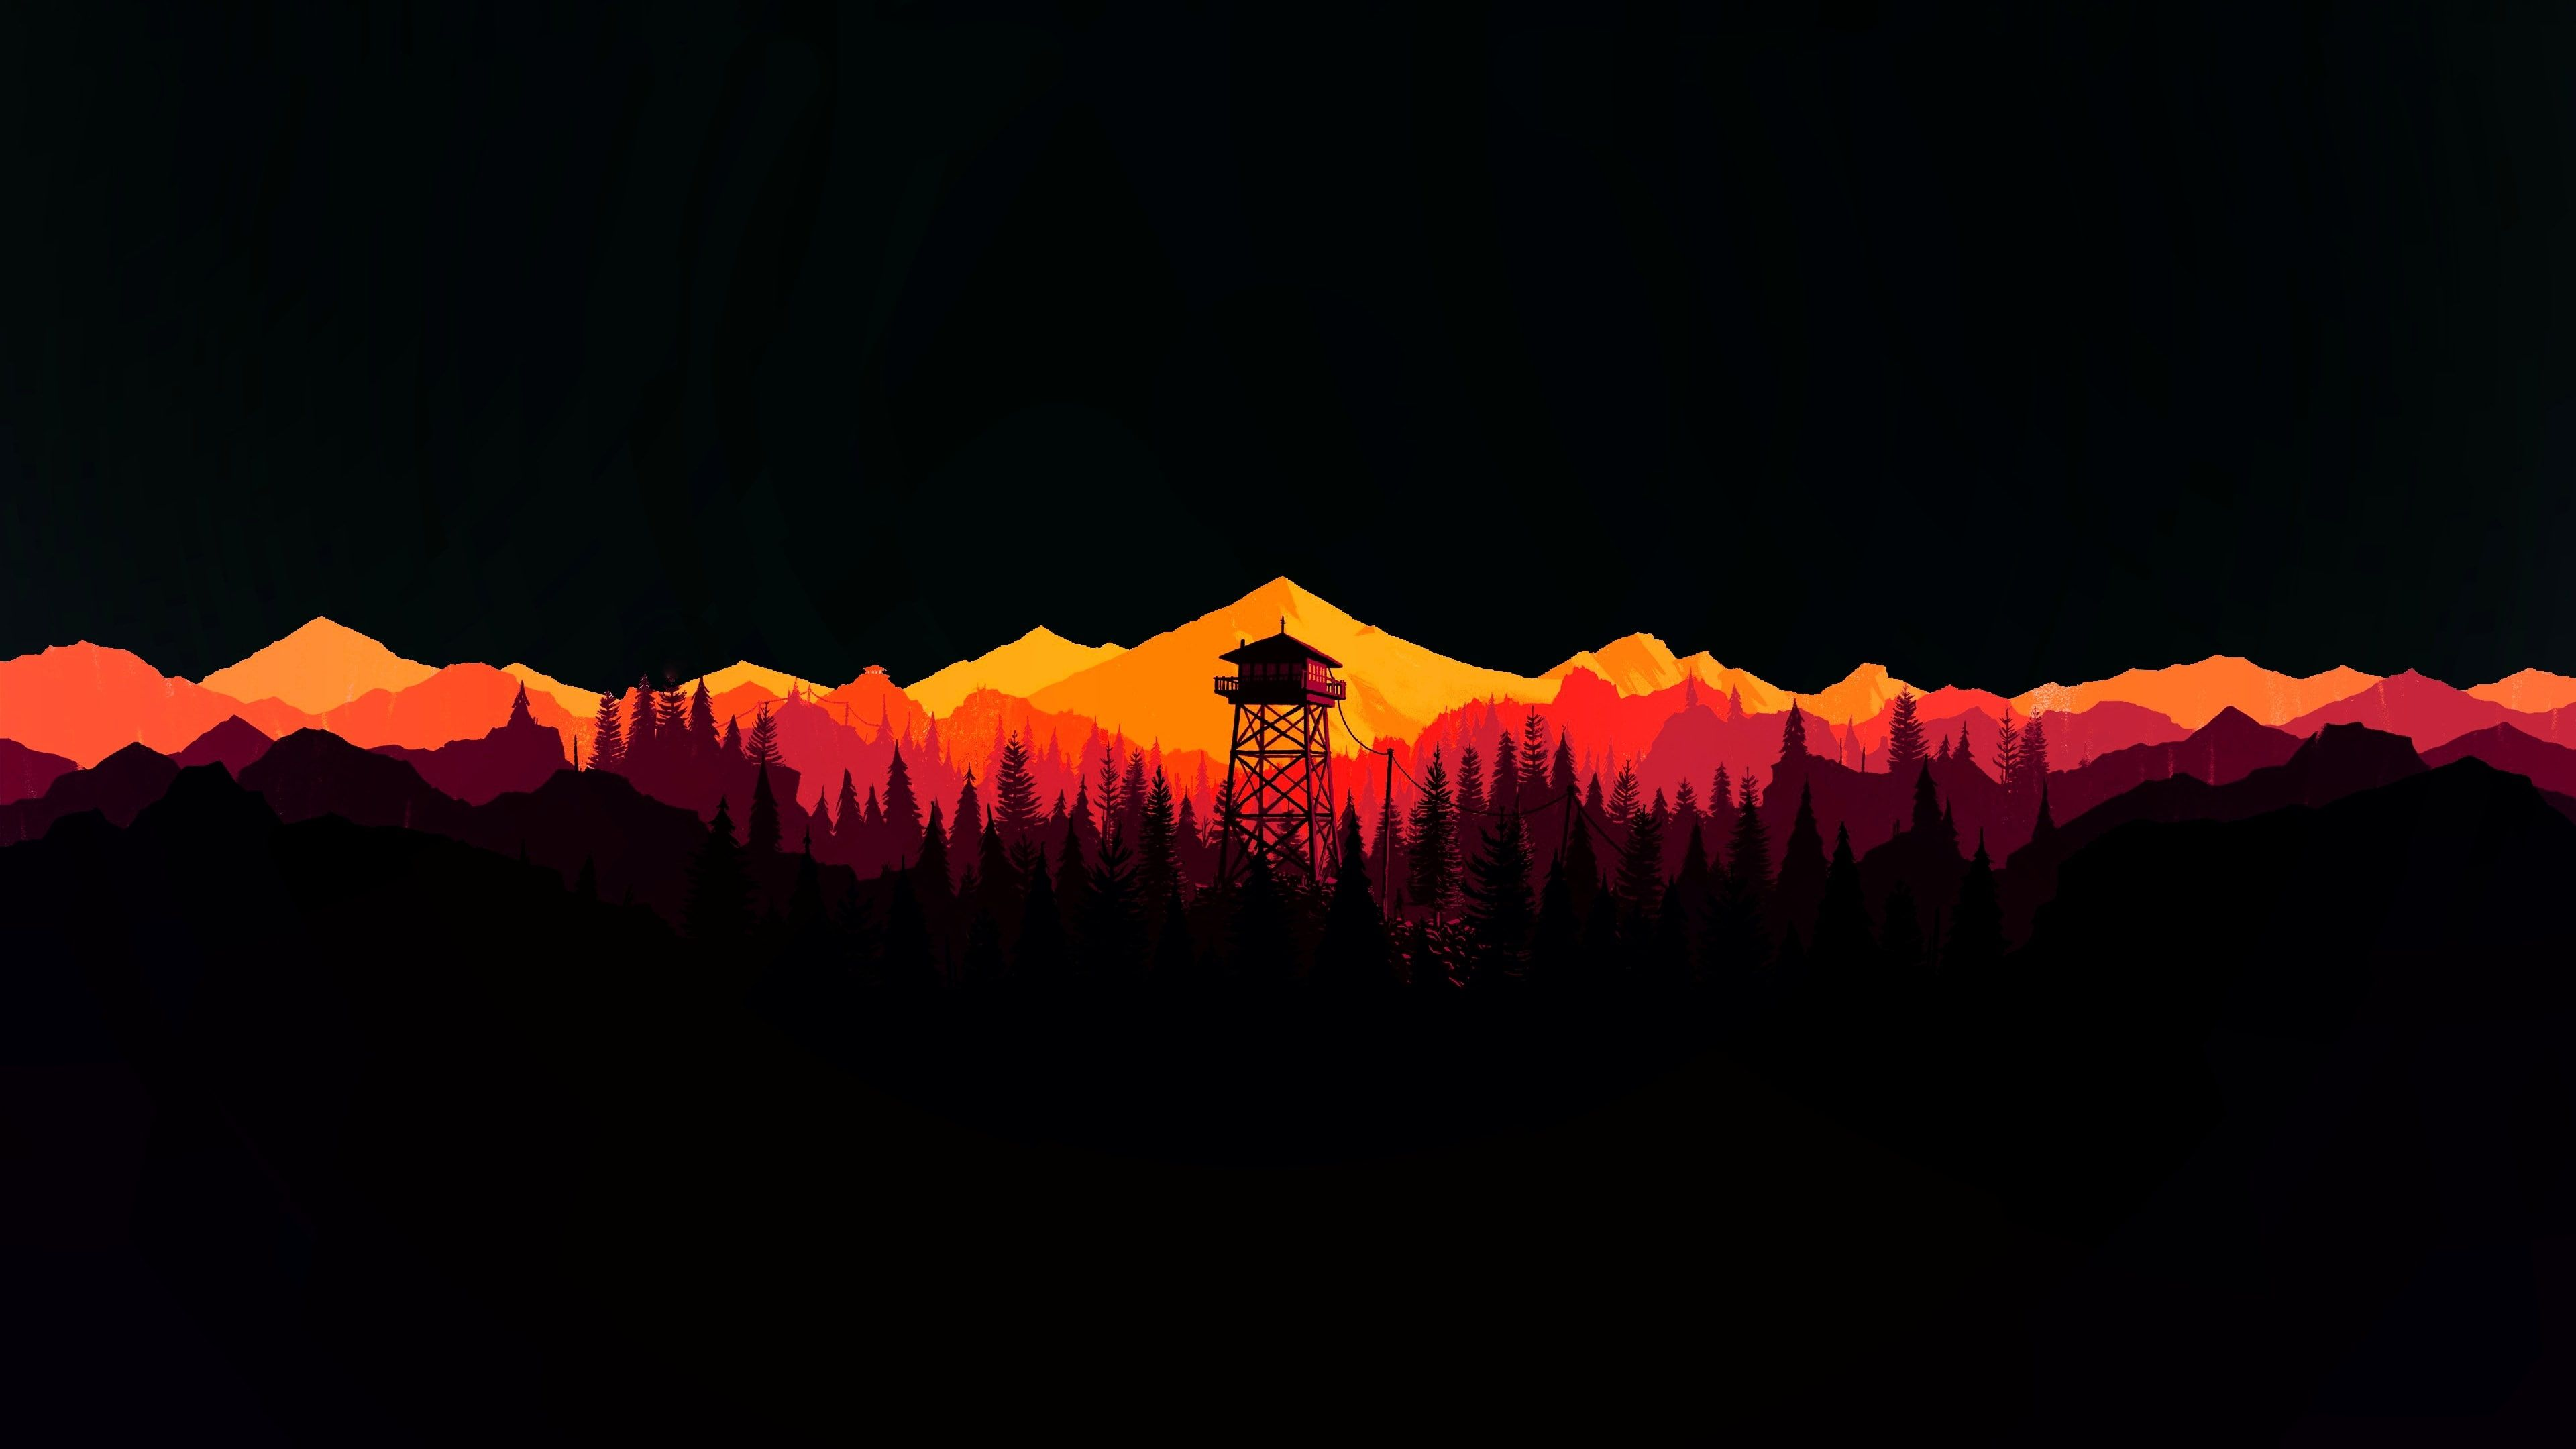 Watchtower In Oled Style 4k Wallpaper Hdwallpaper Desktop Computer Wallpaper Desktop Wallpapers Dual Screen Wallpaper Iphone Homescreen Wallpaper